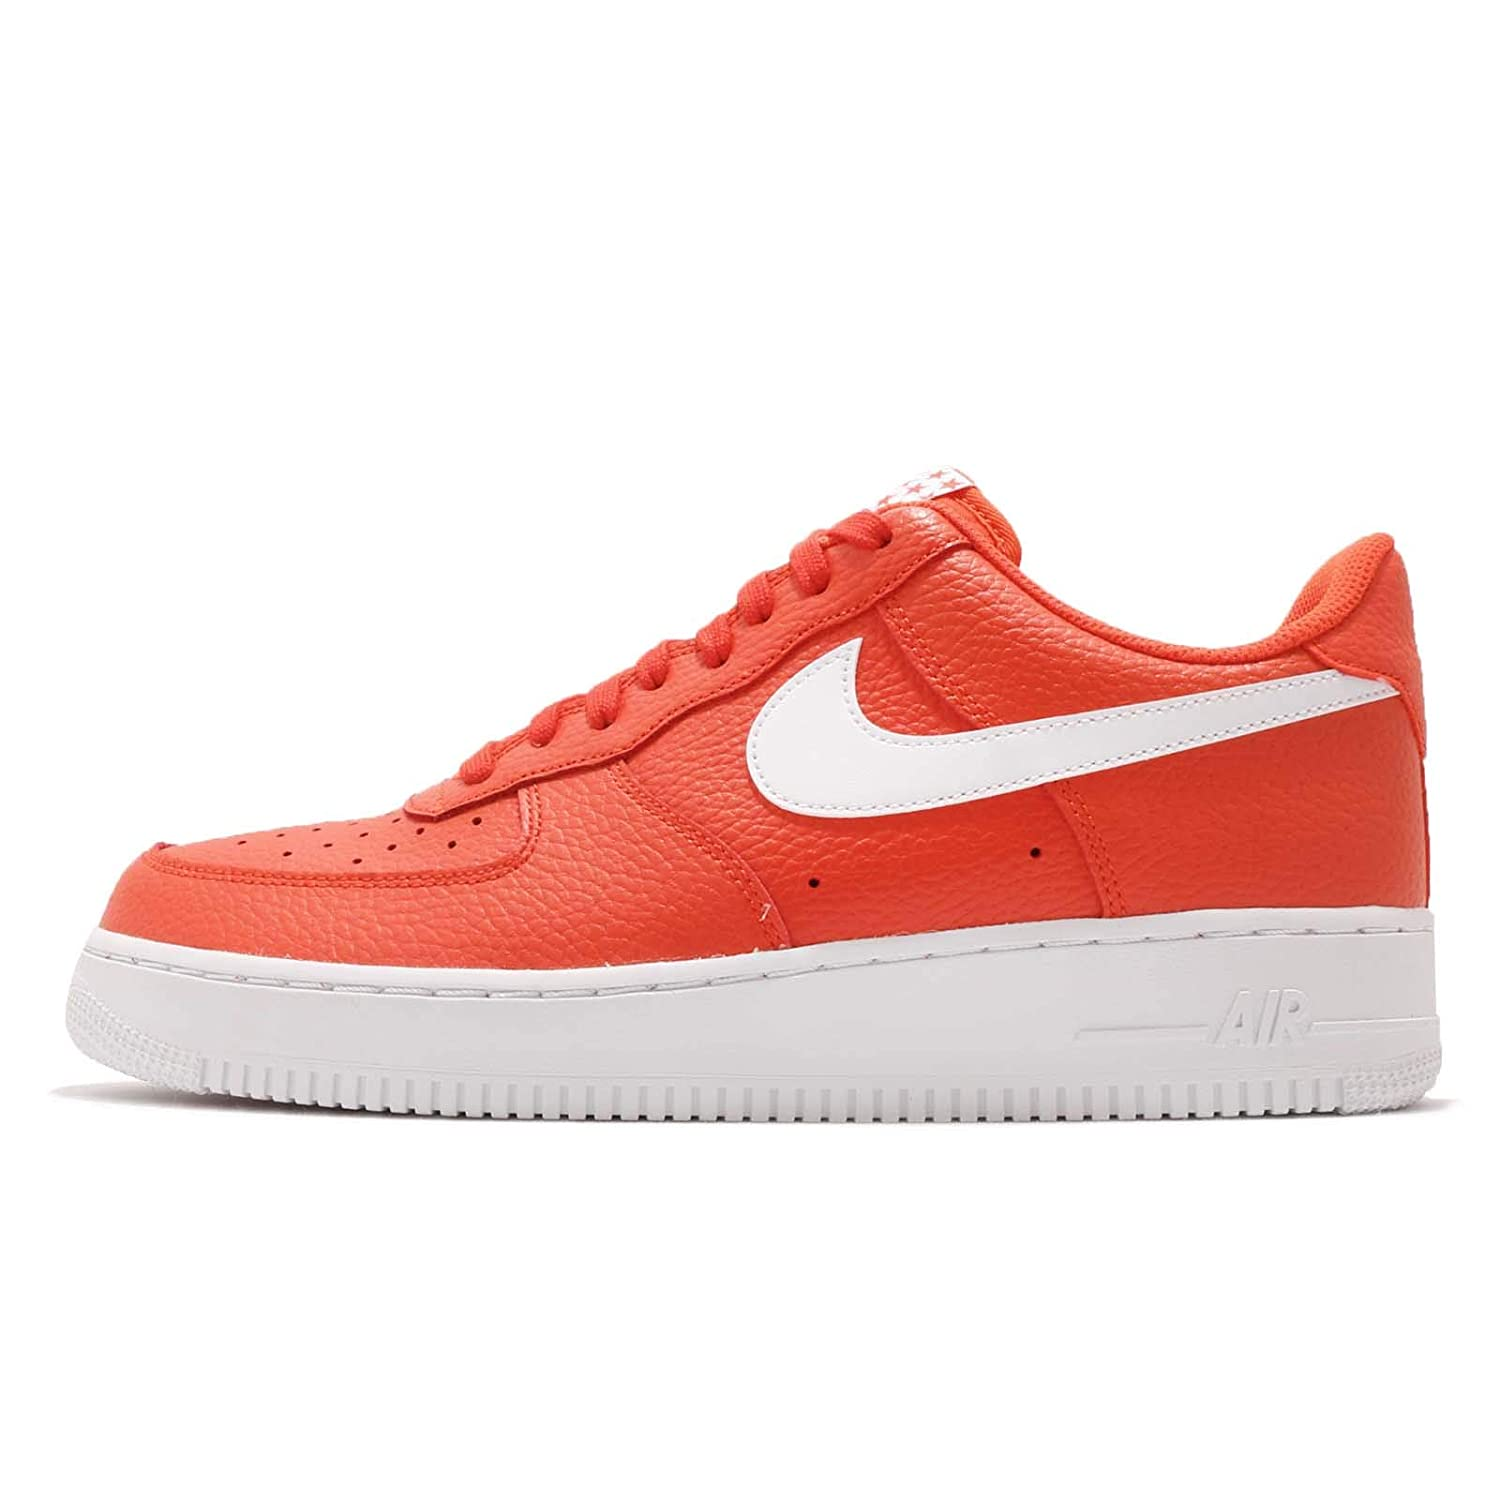 mme force nike air force mme 1, les formateurs sp 9742cd